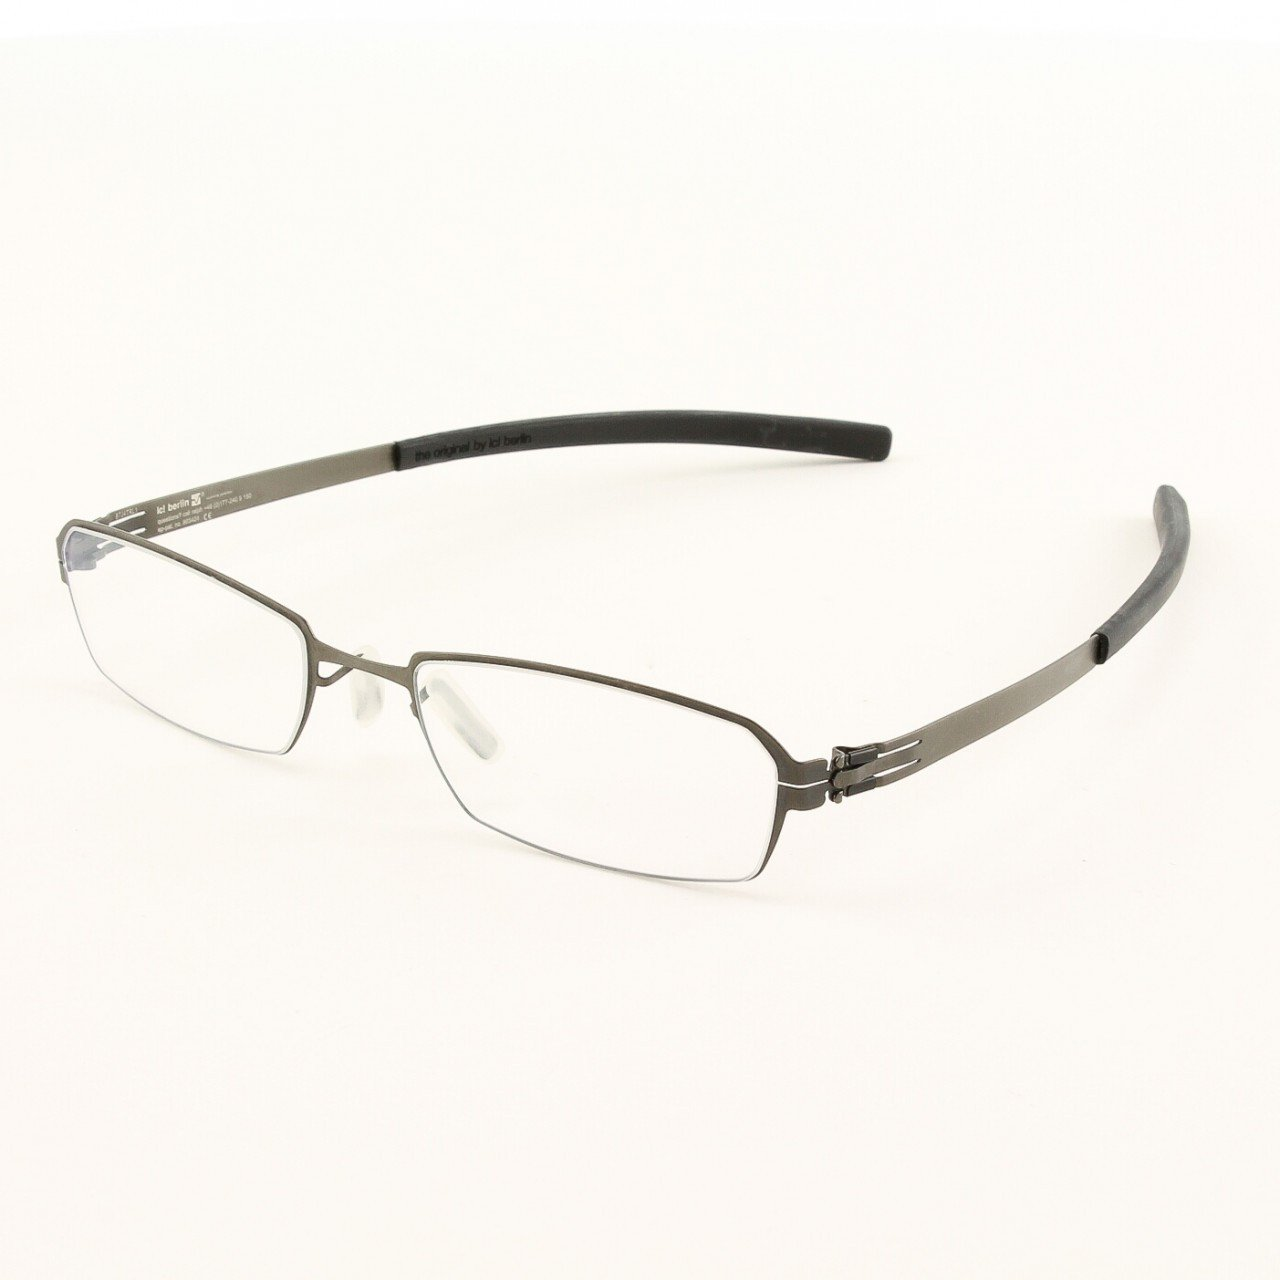 ic! Berlin Solal Eyeglasses Col. Graphite with Clear Lenses